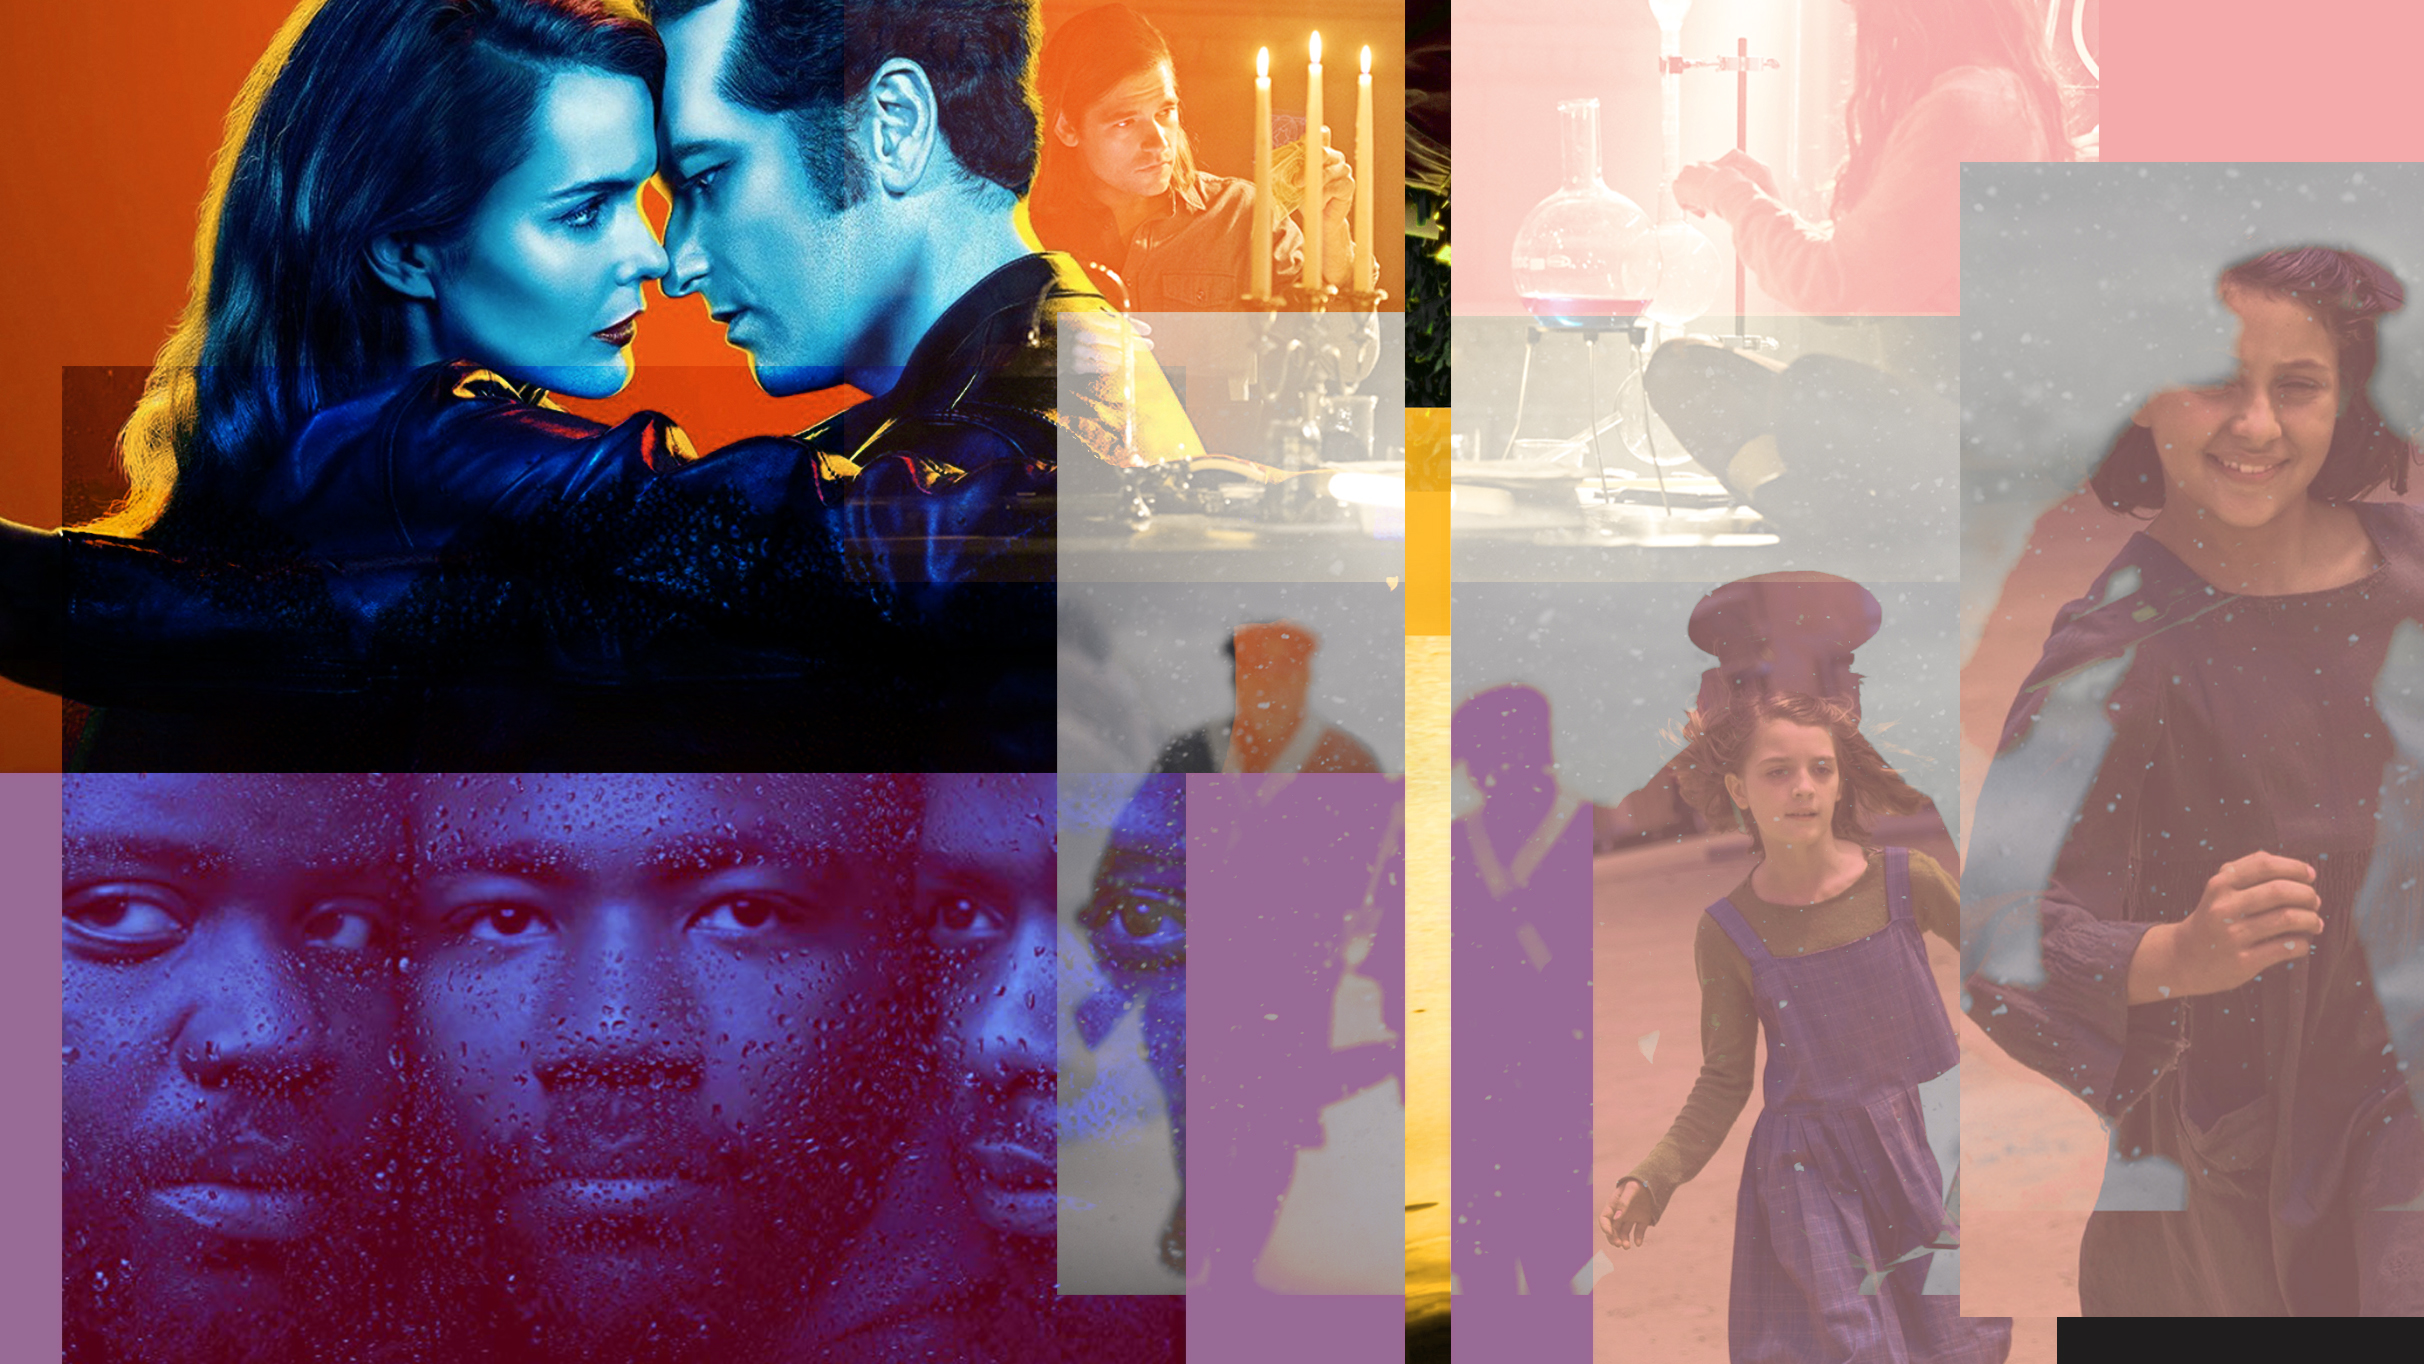 The Best Tv Of 2018 7 Great Shows And How To Watch Them Vox